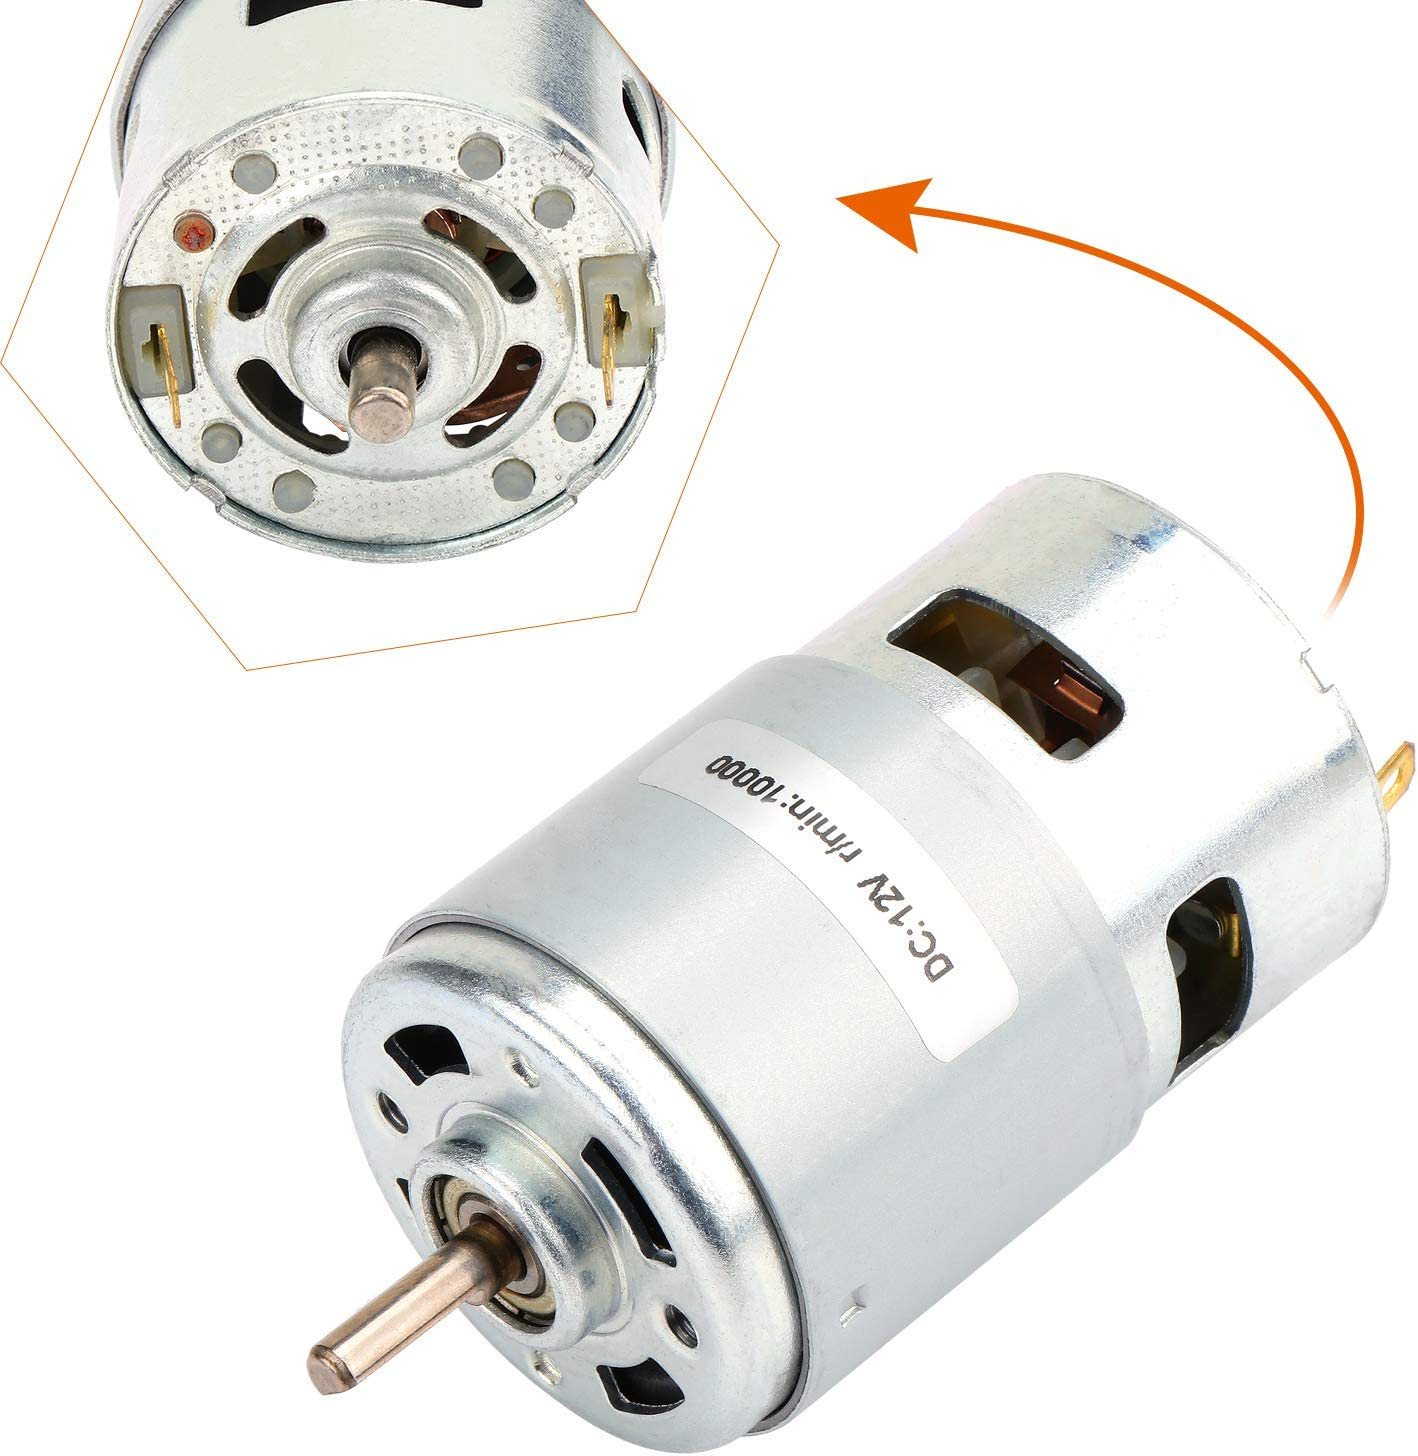 Double Ball Bearing Micro Electric Motor Low Noise High Speed Motor Coolty DC 12V 10000RPM Brush Motor